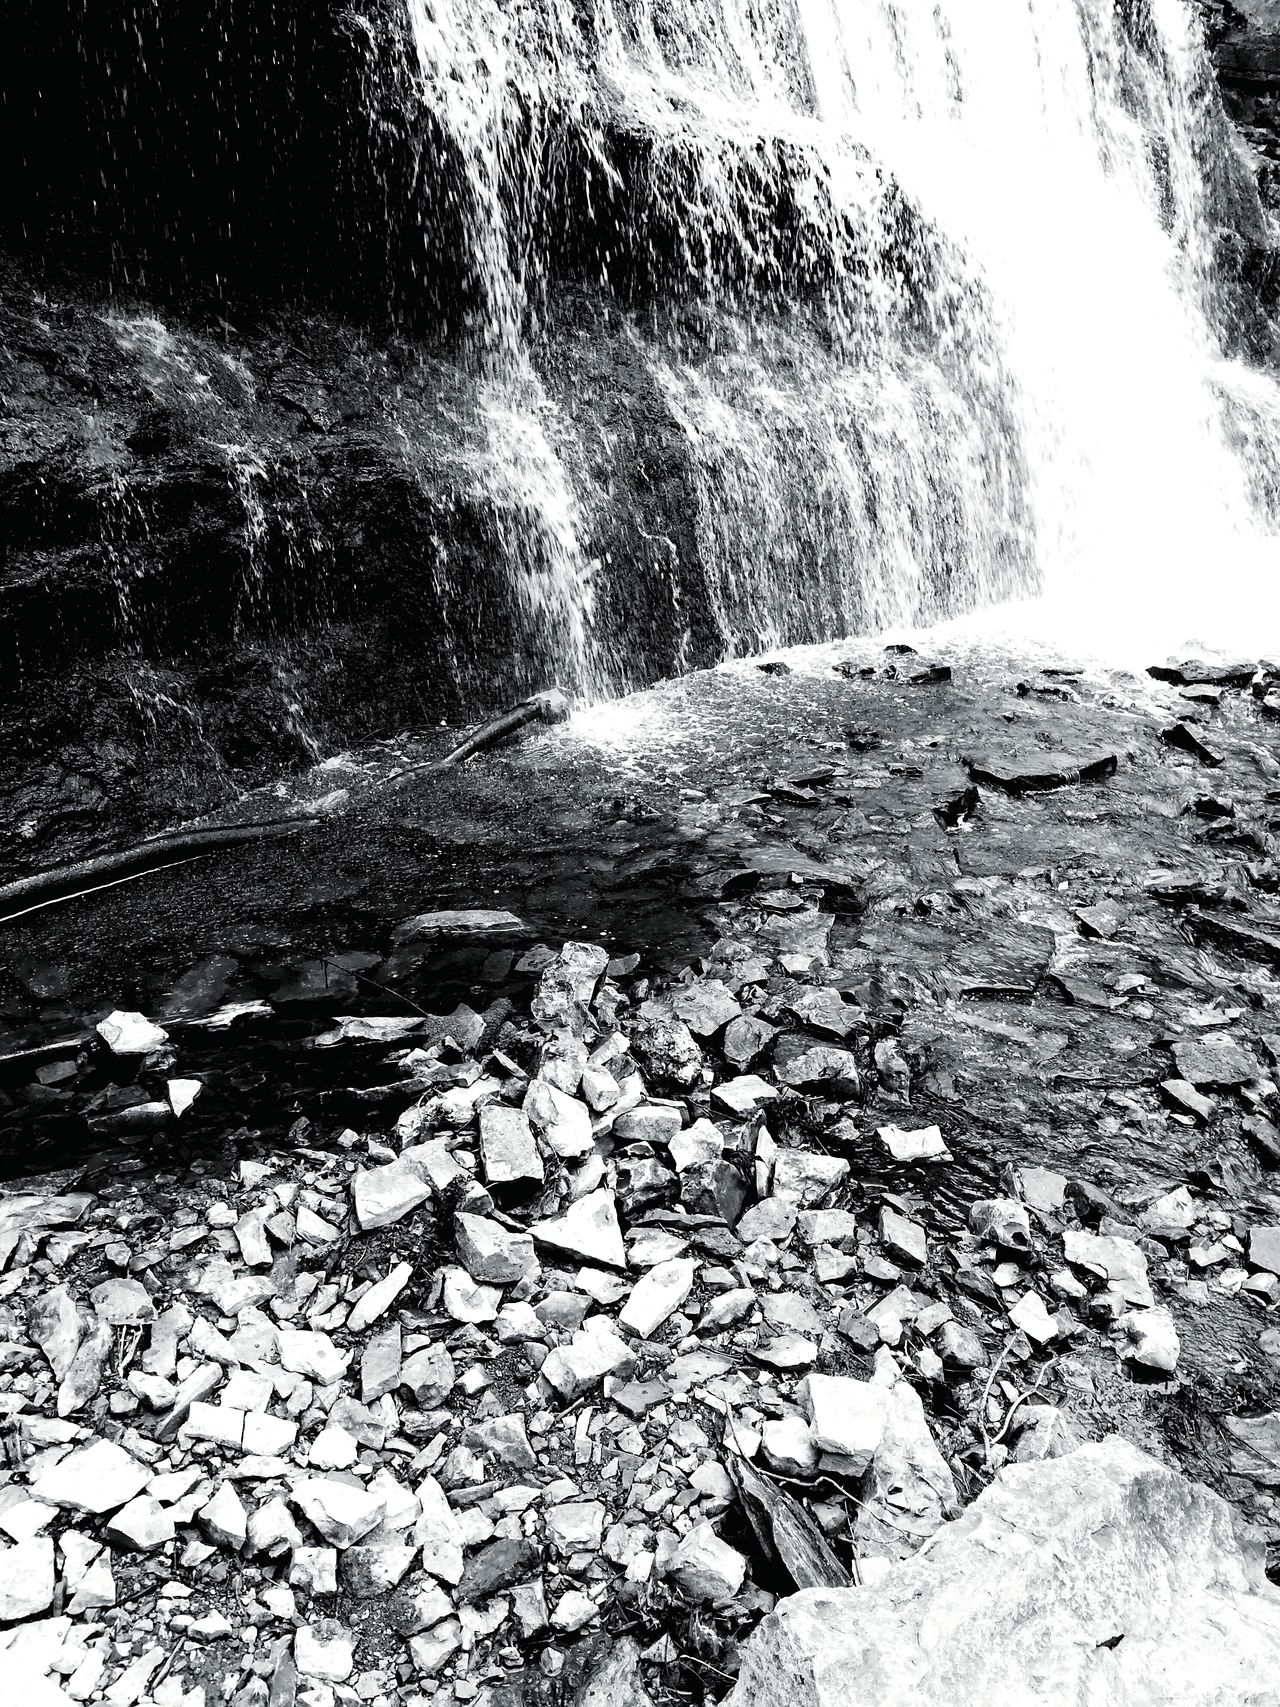 Nature Water No People Outdoors Beauty In Nature Close-up Day Waterfall Blackandwhite Hike Canada Waterscape Tranquility Pond Life Close Up Growth Scenics Beauty In Nature Tranquil Scene Landscape Nature